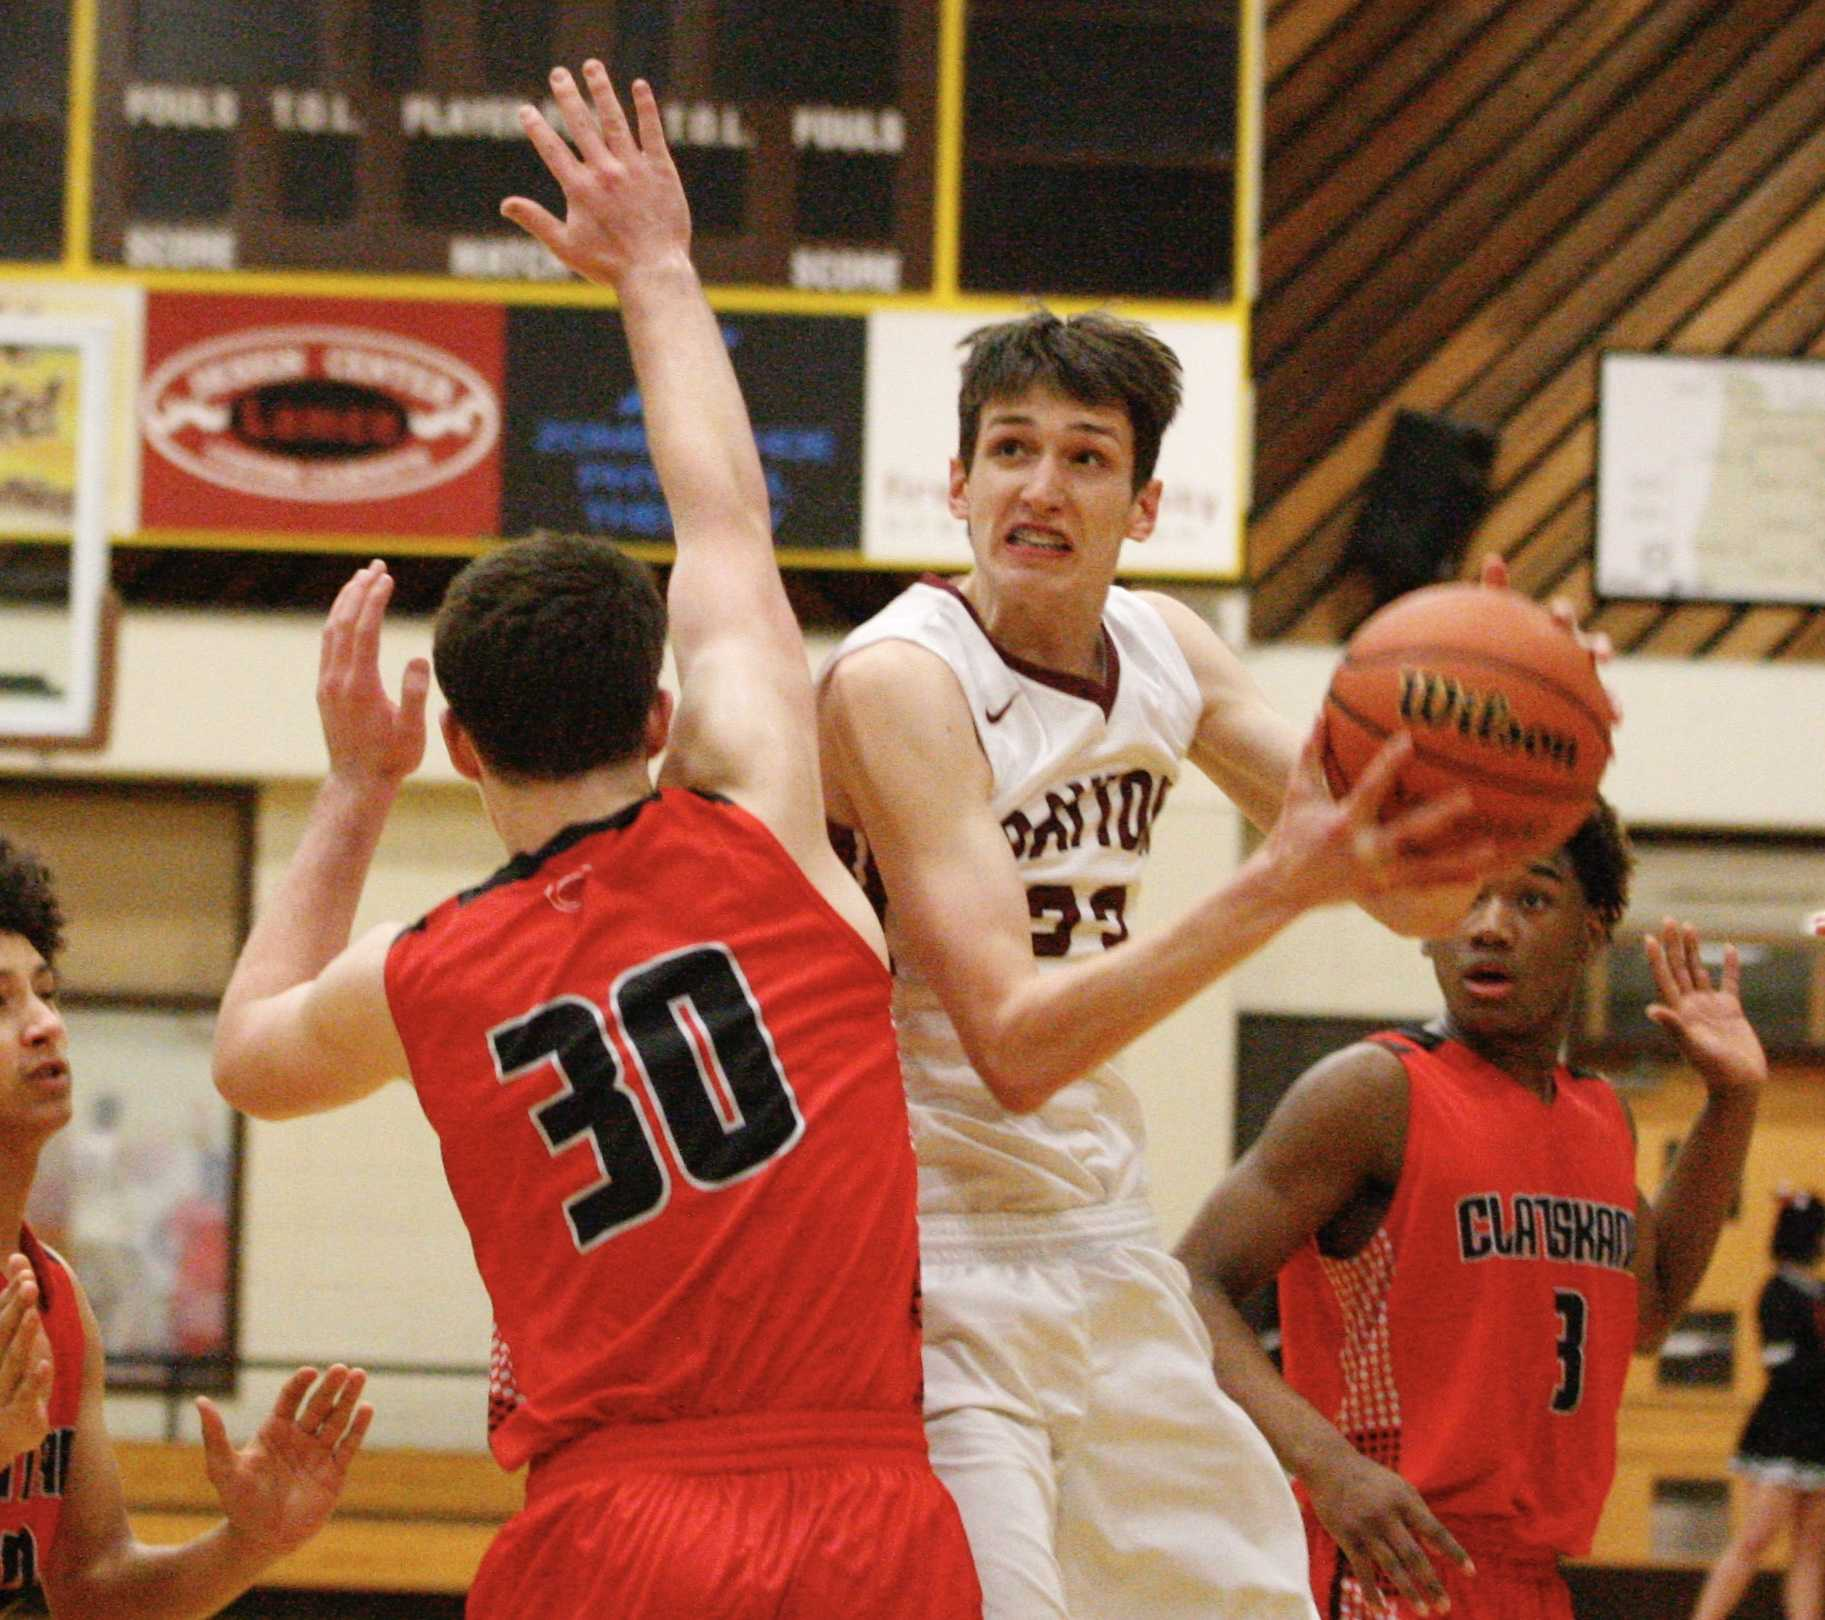 Dayton's Jaysen Howard gets between two Clatskanie defenders for a scoop shot Thursday. (Photo by Norm Maves Jr.)